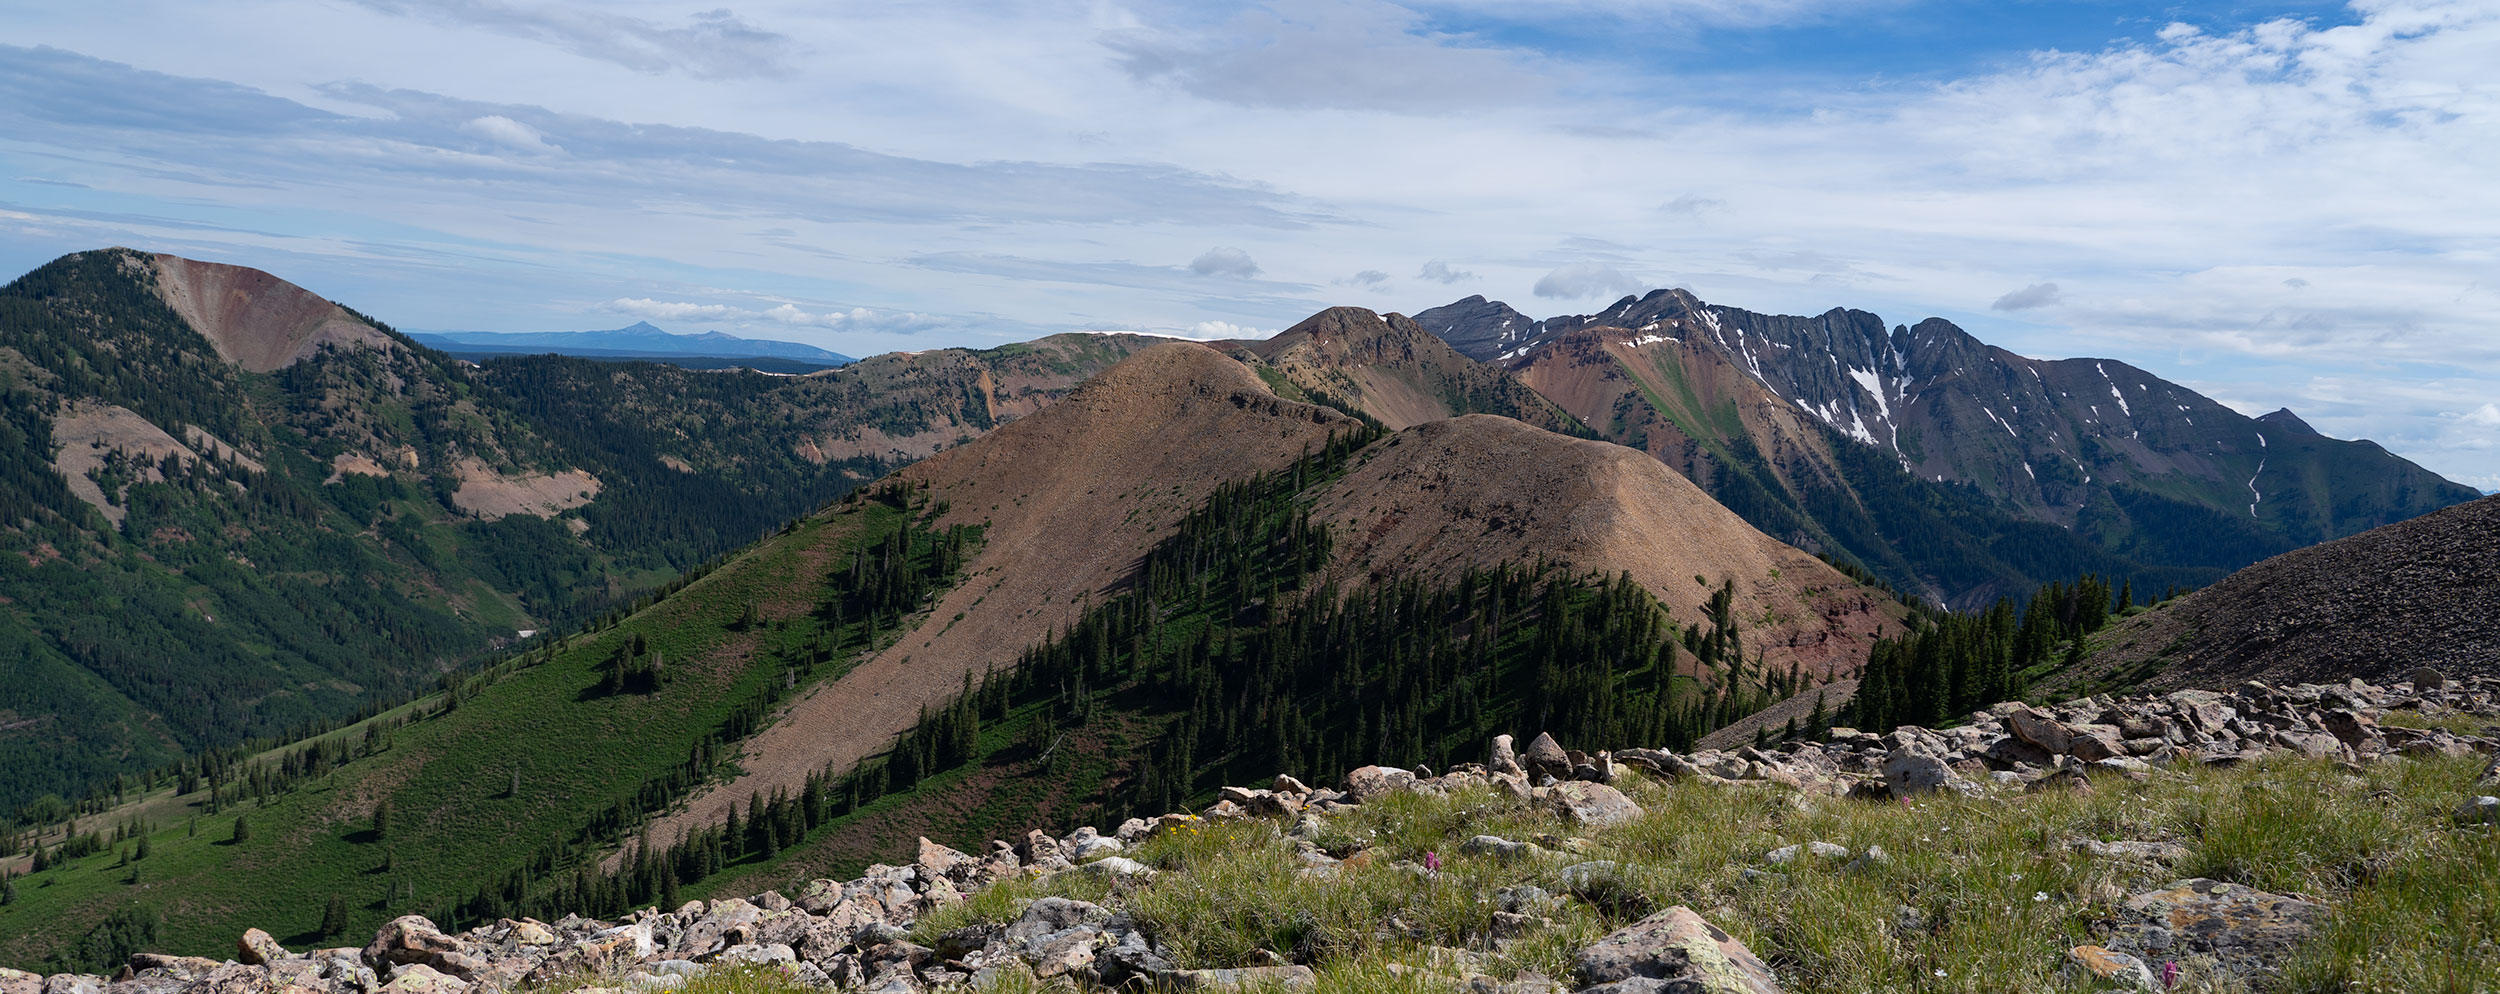 Top of Madden Peak - Copyright Debbie Devereaux Photography